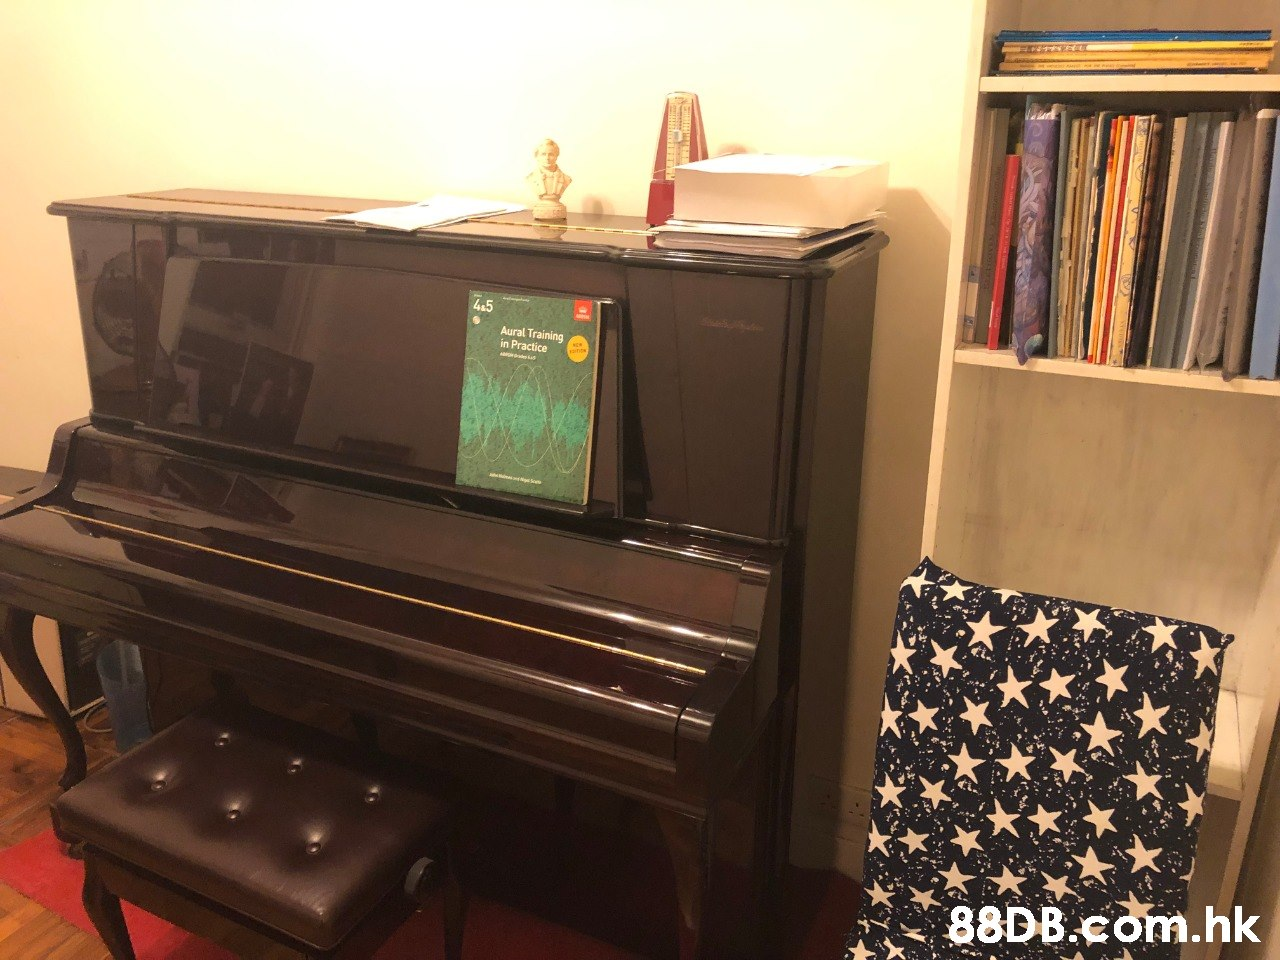 45 Aural Training in Practice .hk  Piano,Musical instrument,Electronic instrument,Keyboard,Fortepiano